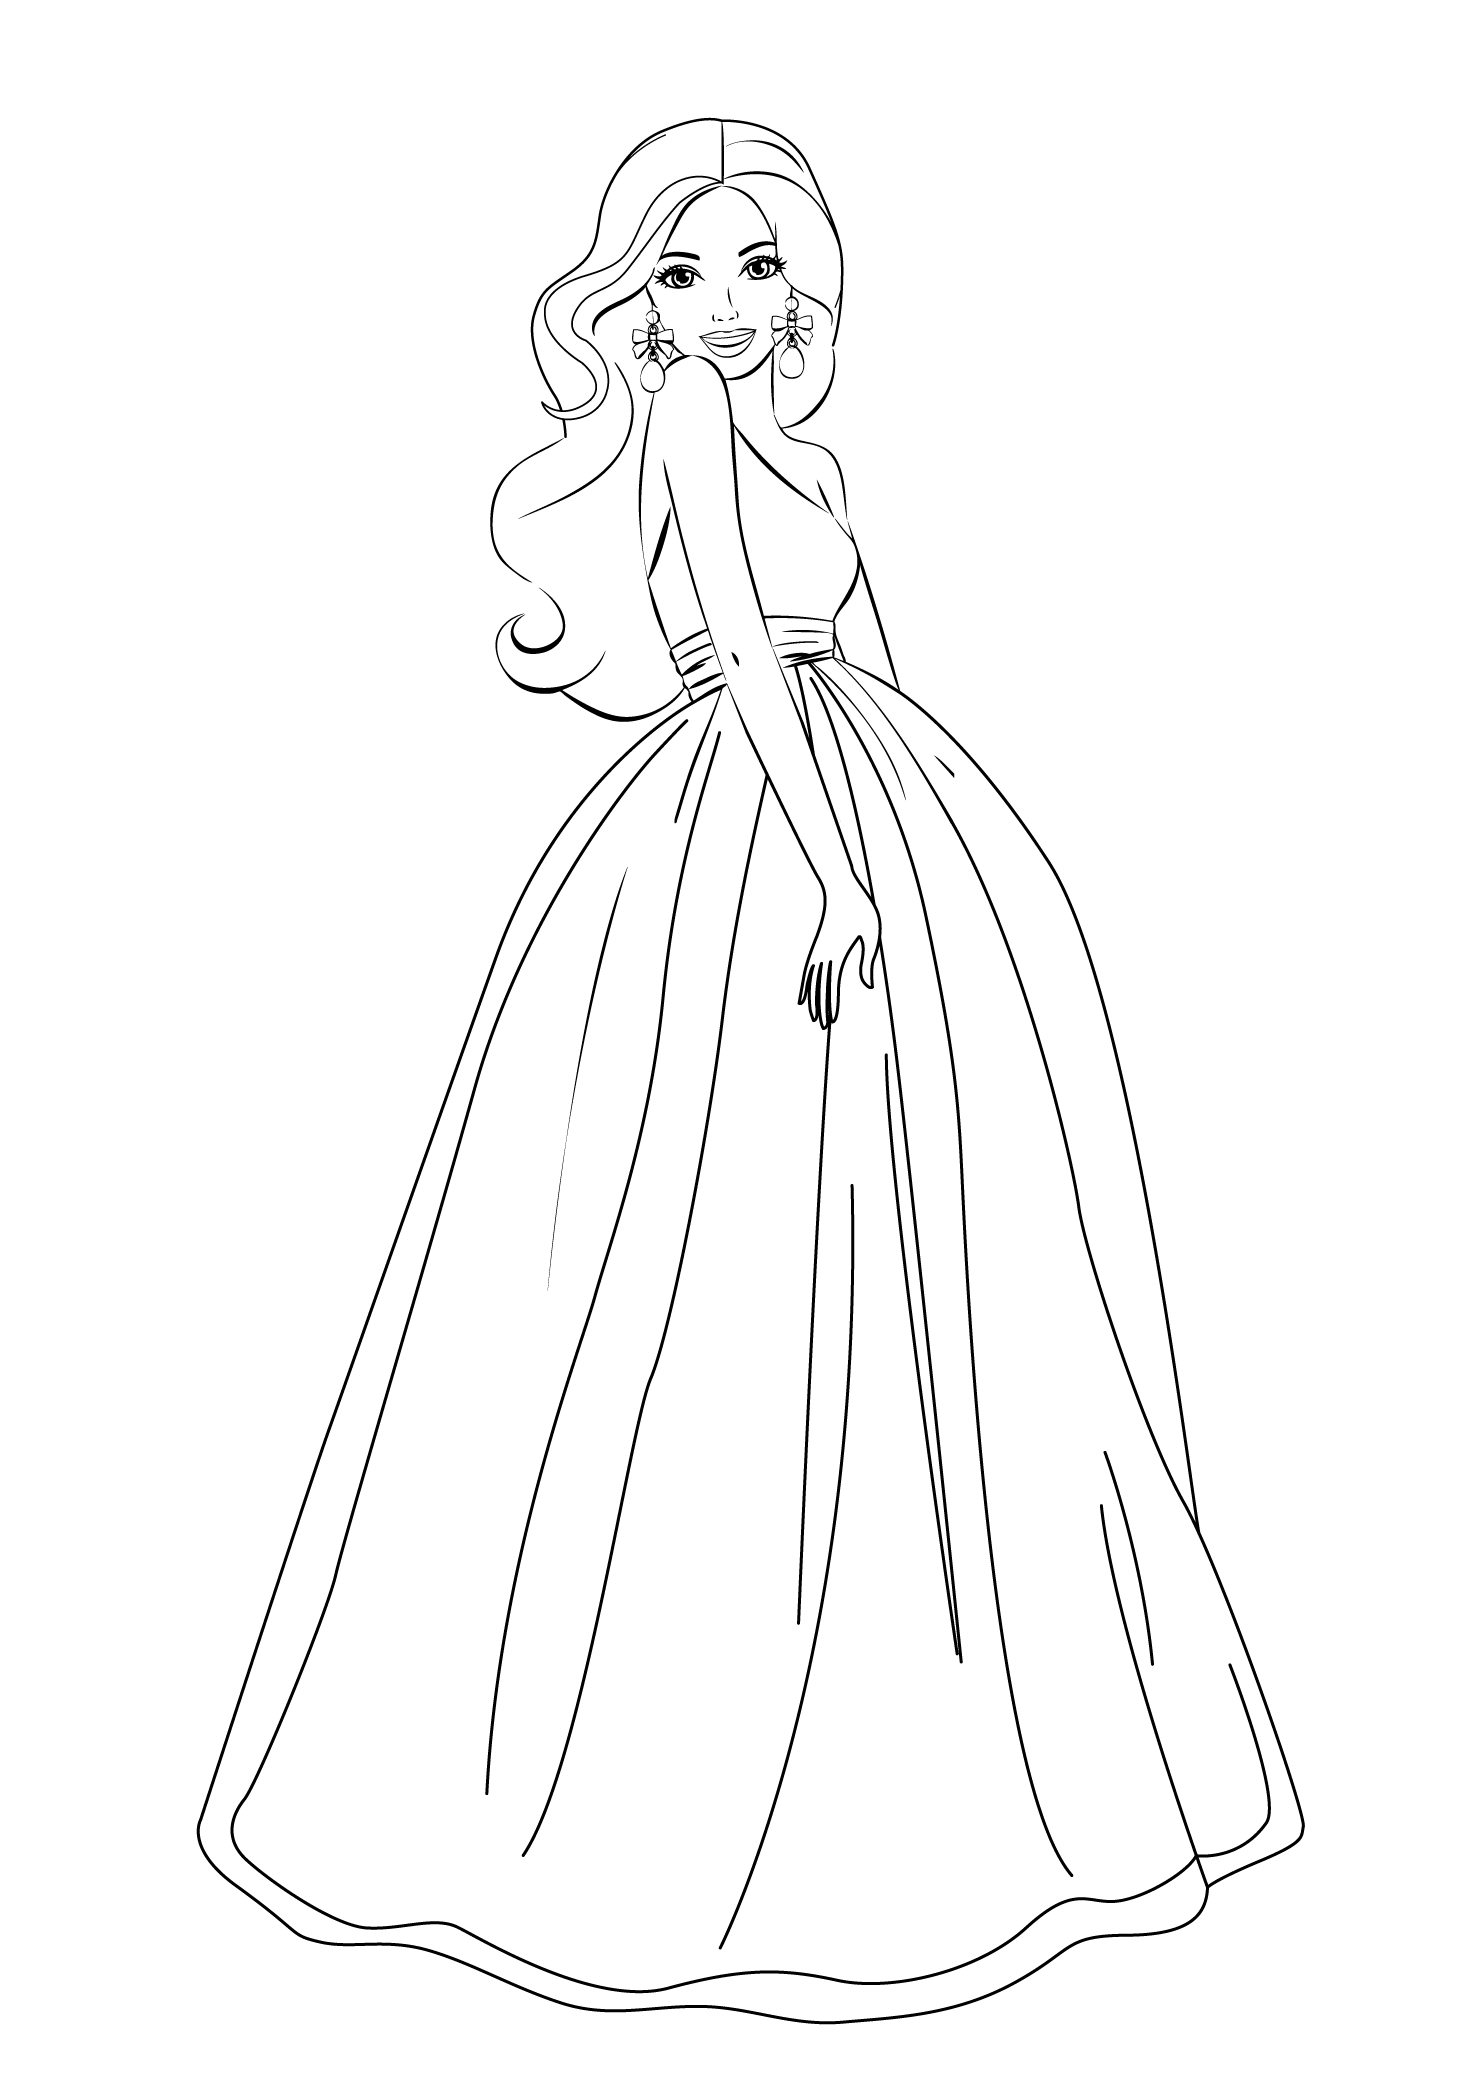 barbie coloring pages for girls free printable - Barbie Coloring Page